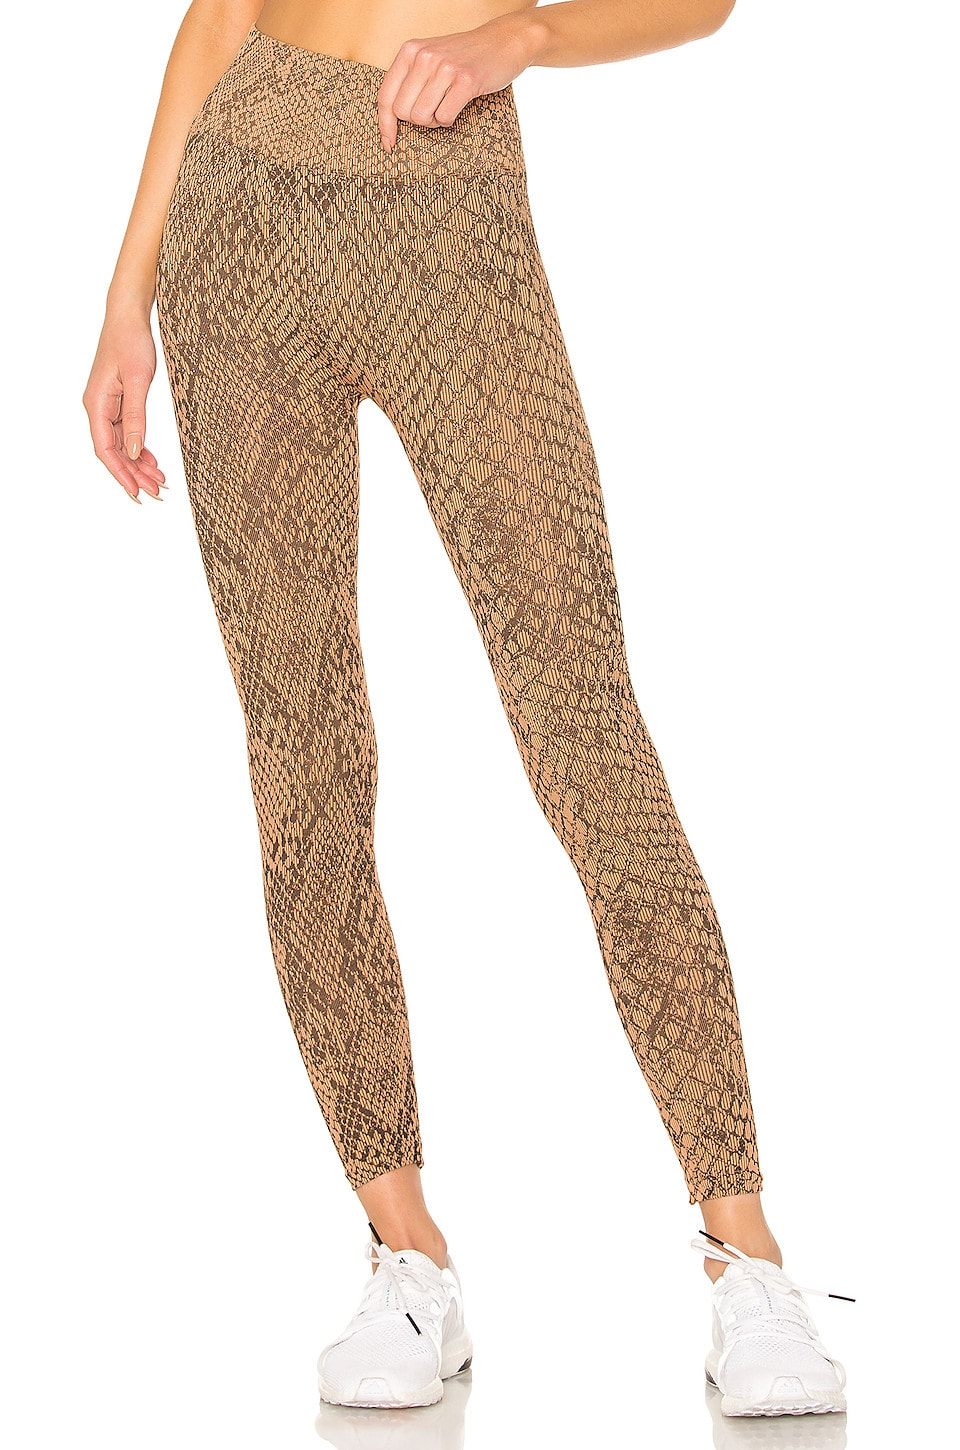 TLA by Morgan Stewart Copperhead Legging in Nude & Noir